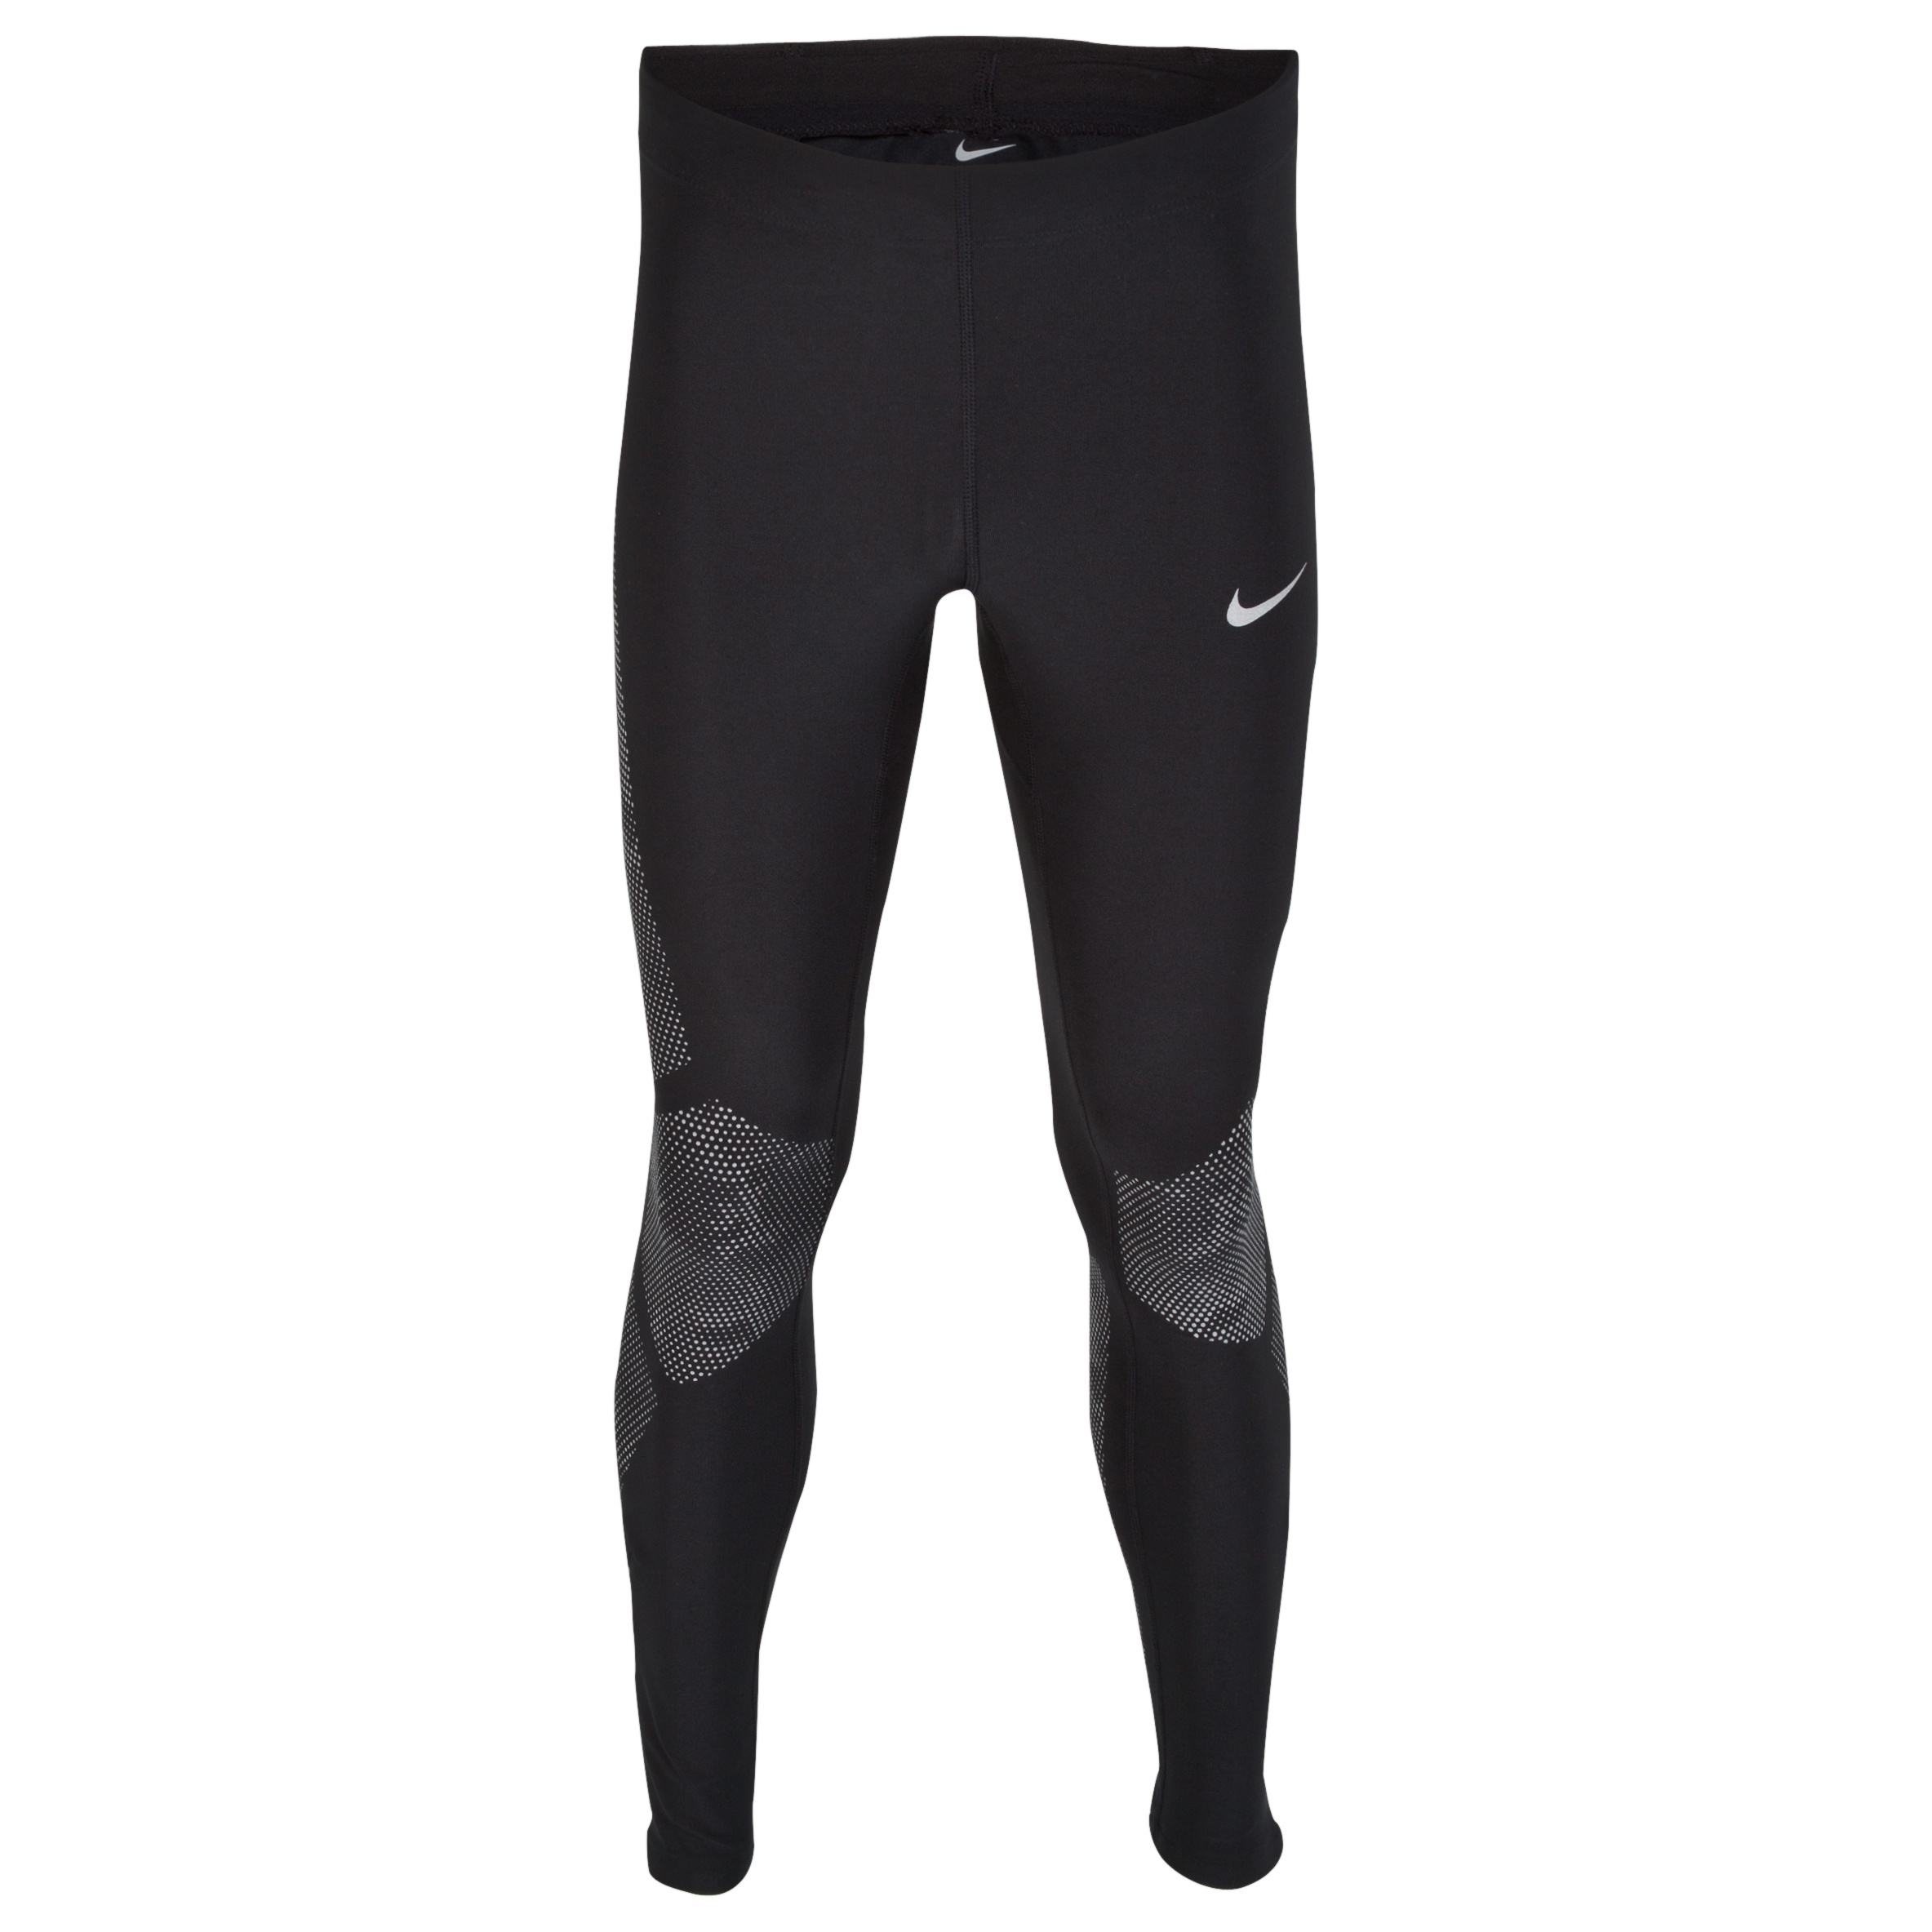 Nike Reflective Tight Black